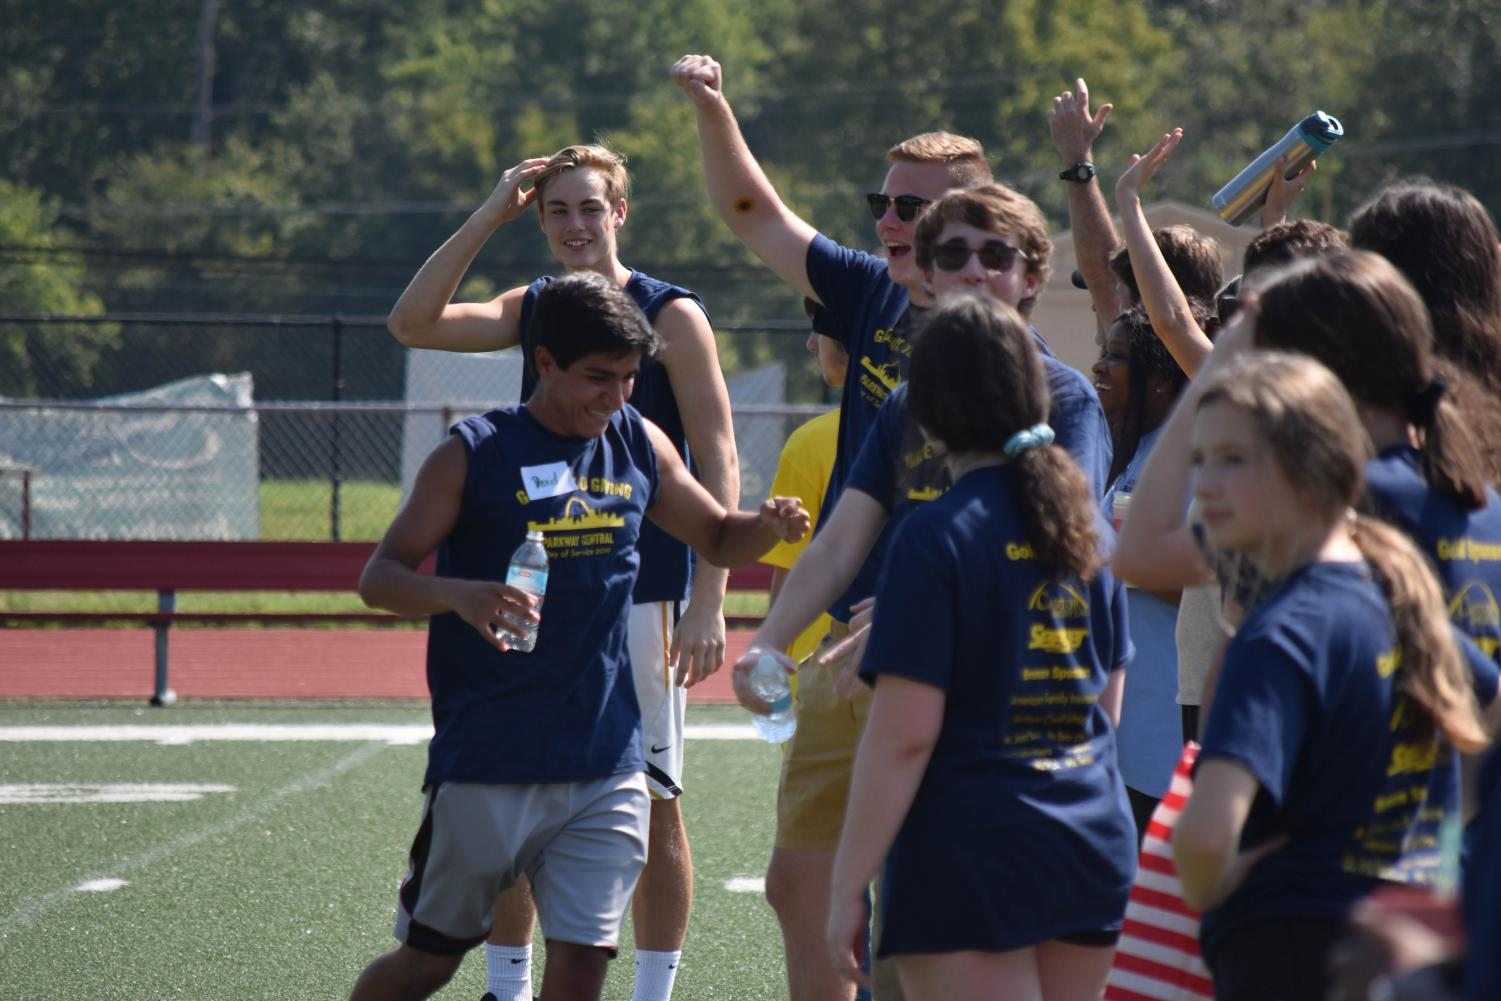 Dan Kelty's Ac Lab cheers on their team on the soccer fields as they play in the tournament.